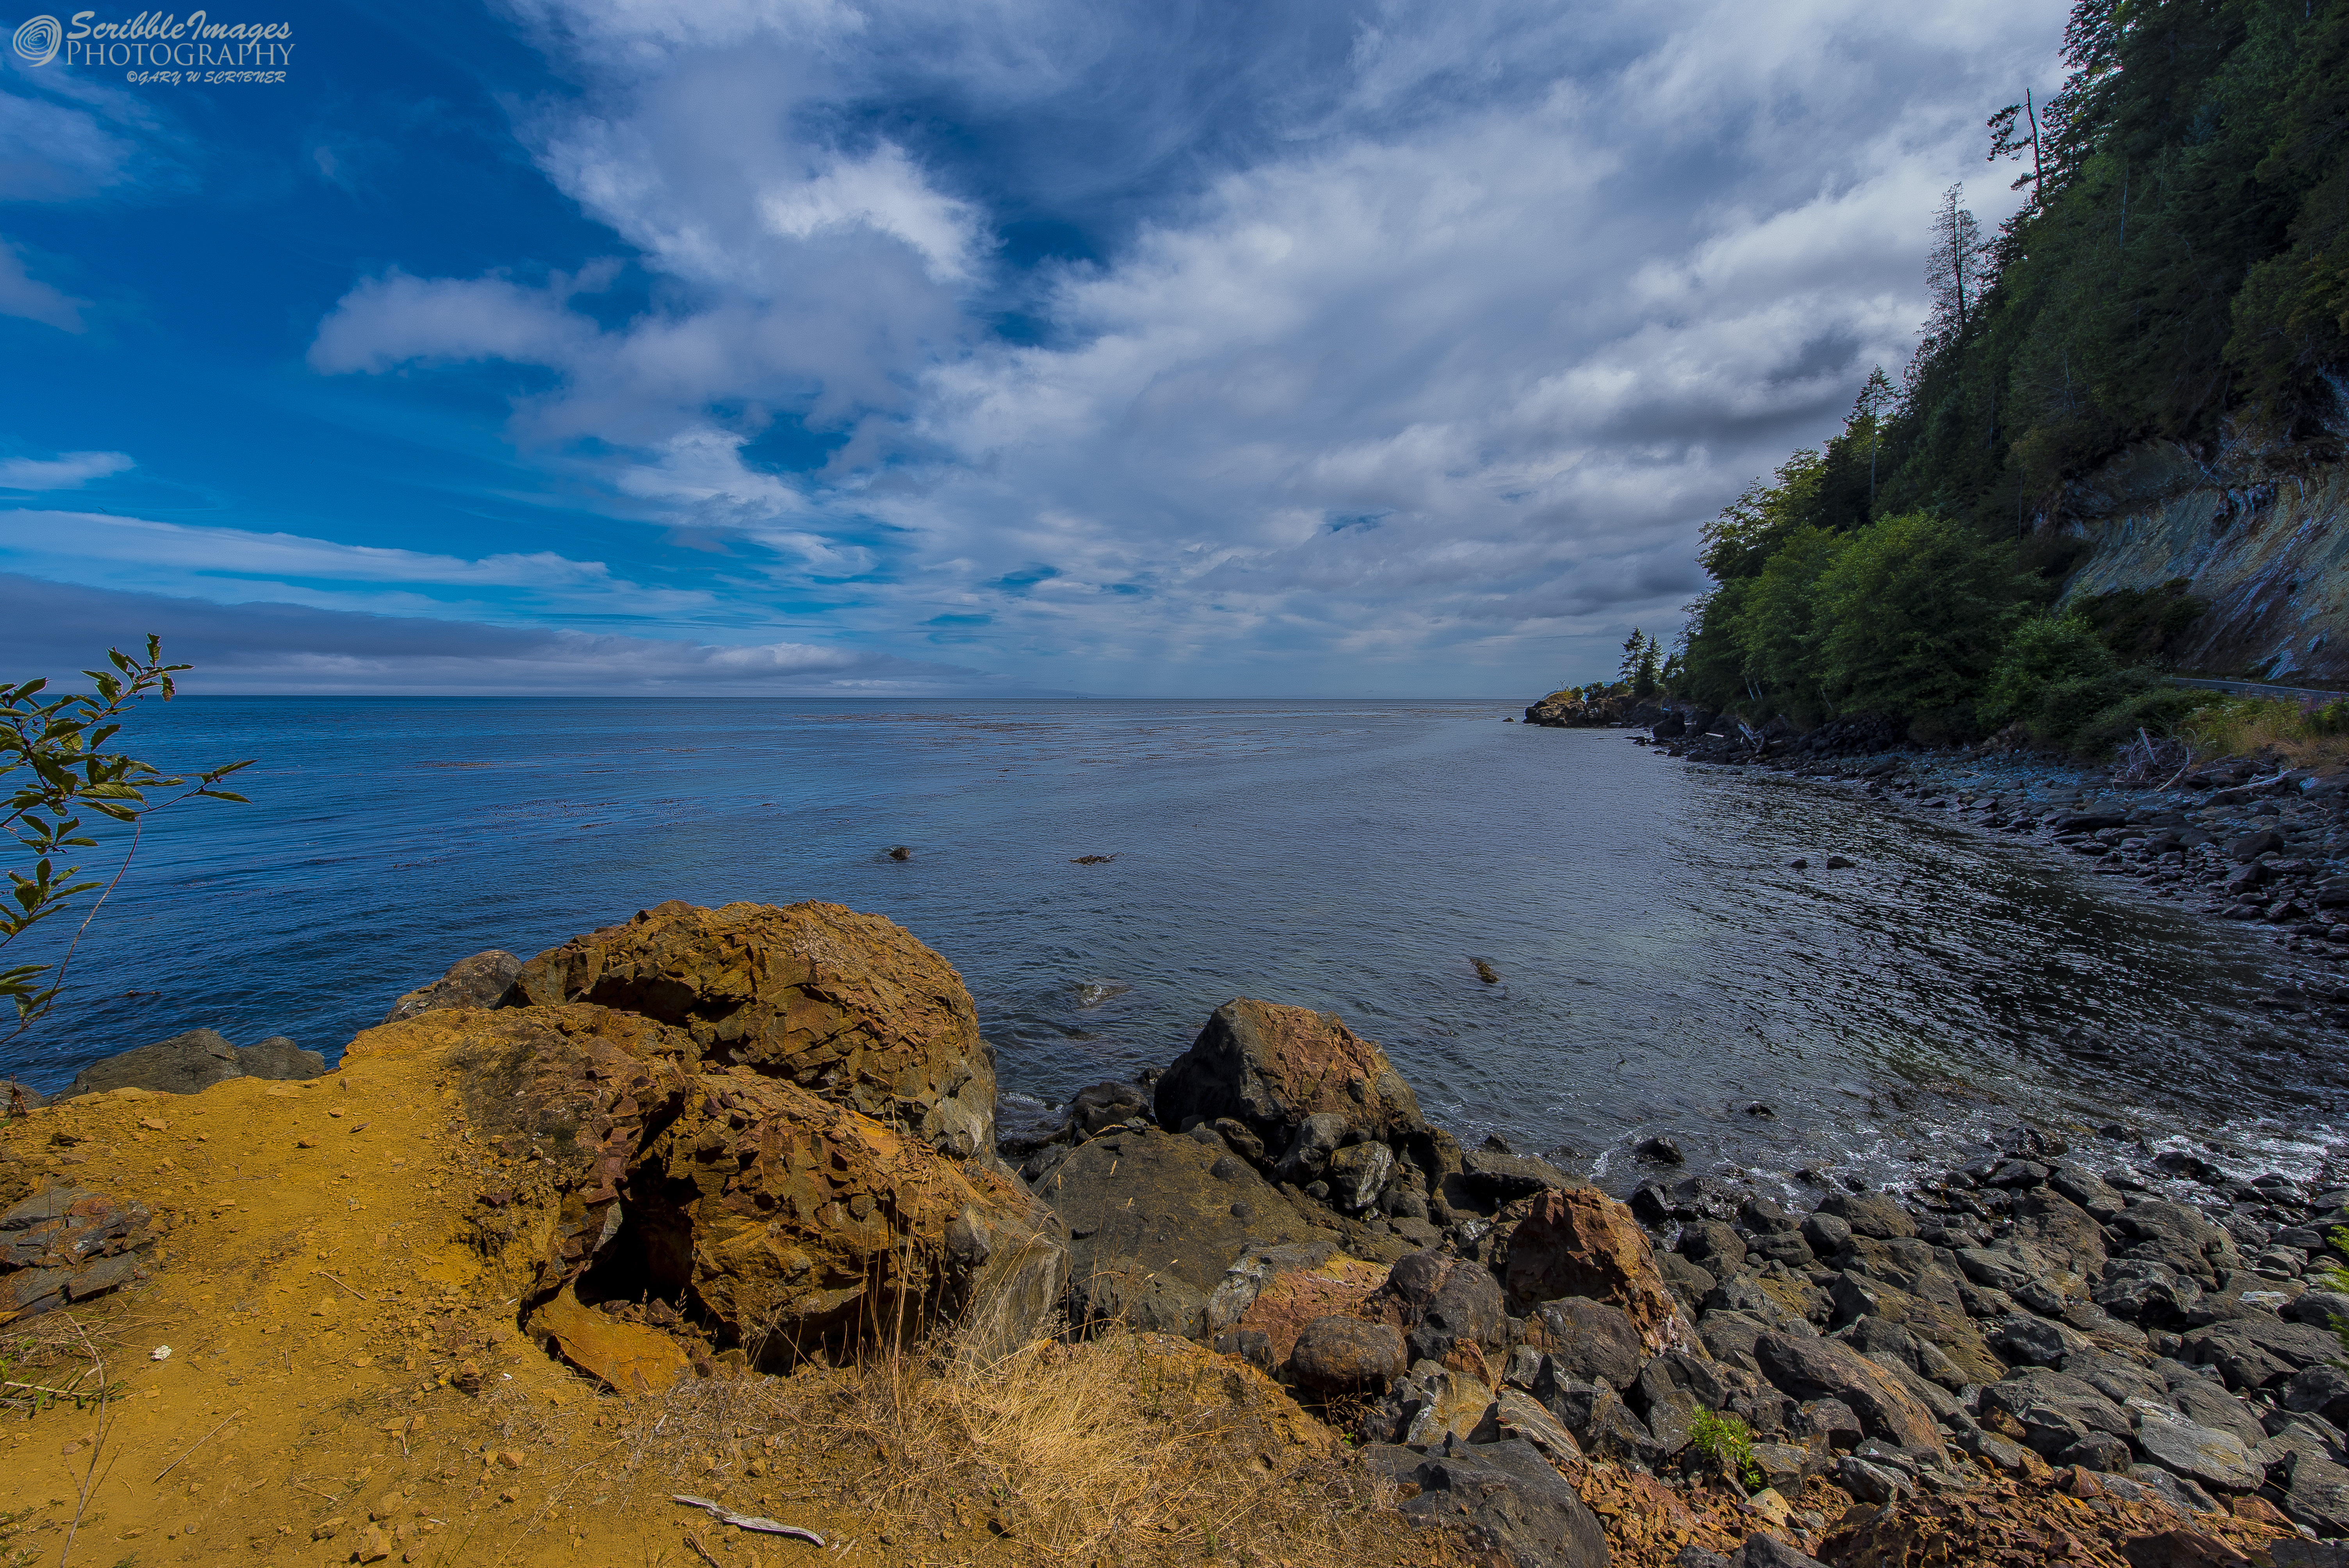 Bay on Route to Cape Flattery, Olympic Peninsula